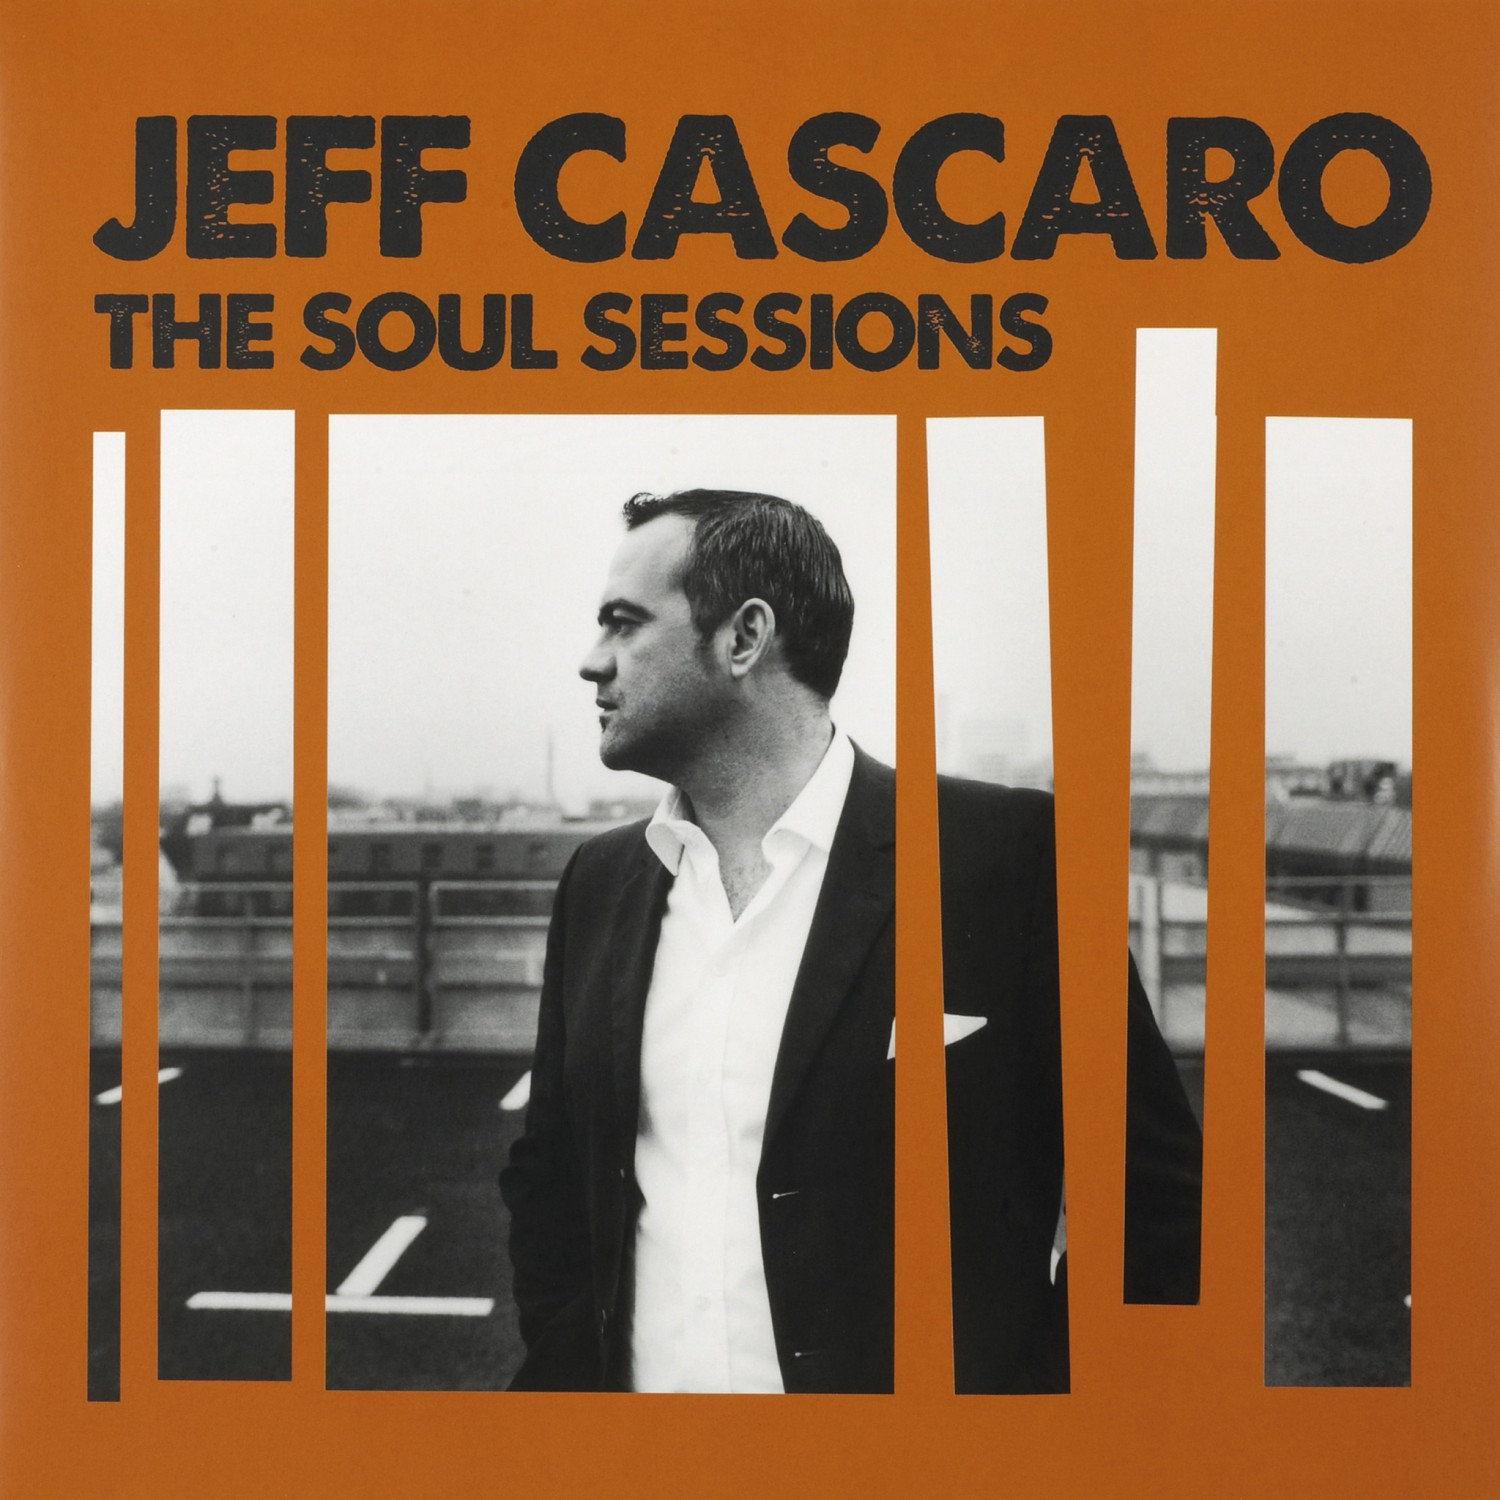 Schallplatte Jeff Cascaro - The Soul Sessions (Herzog Records) im Test, Bild 1